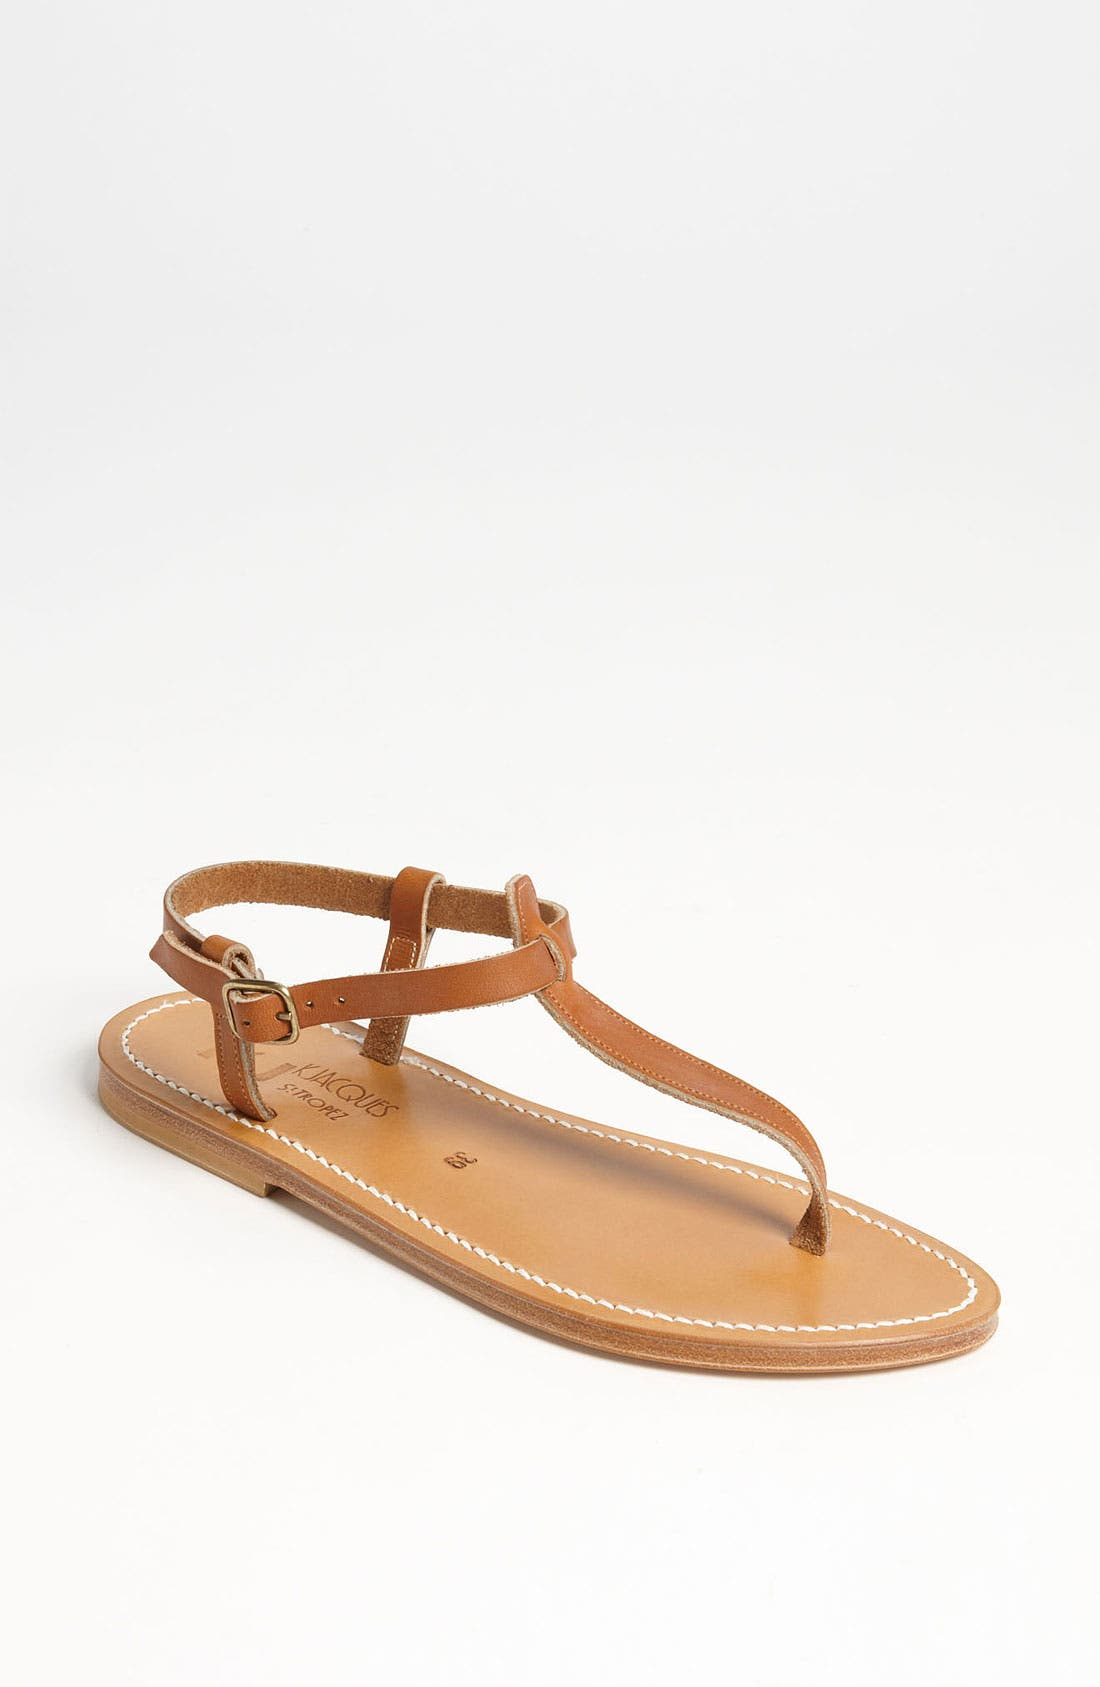 Alternate Image 1 Selected - K.Jacques St. Tropez 'Picon' Sandal